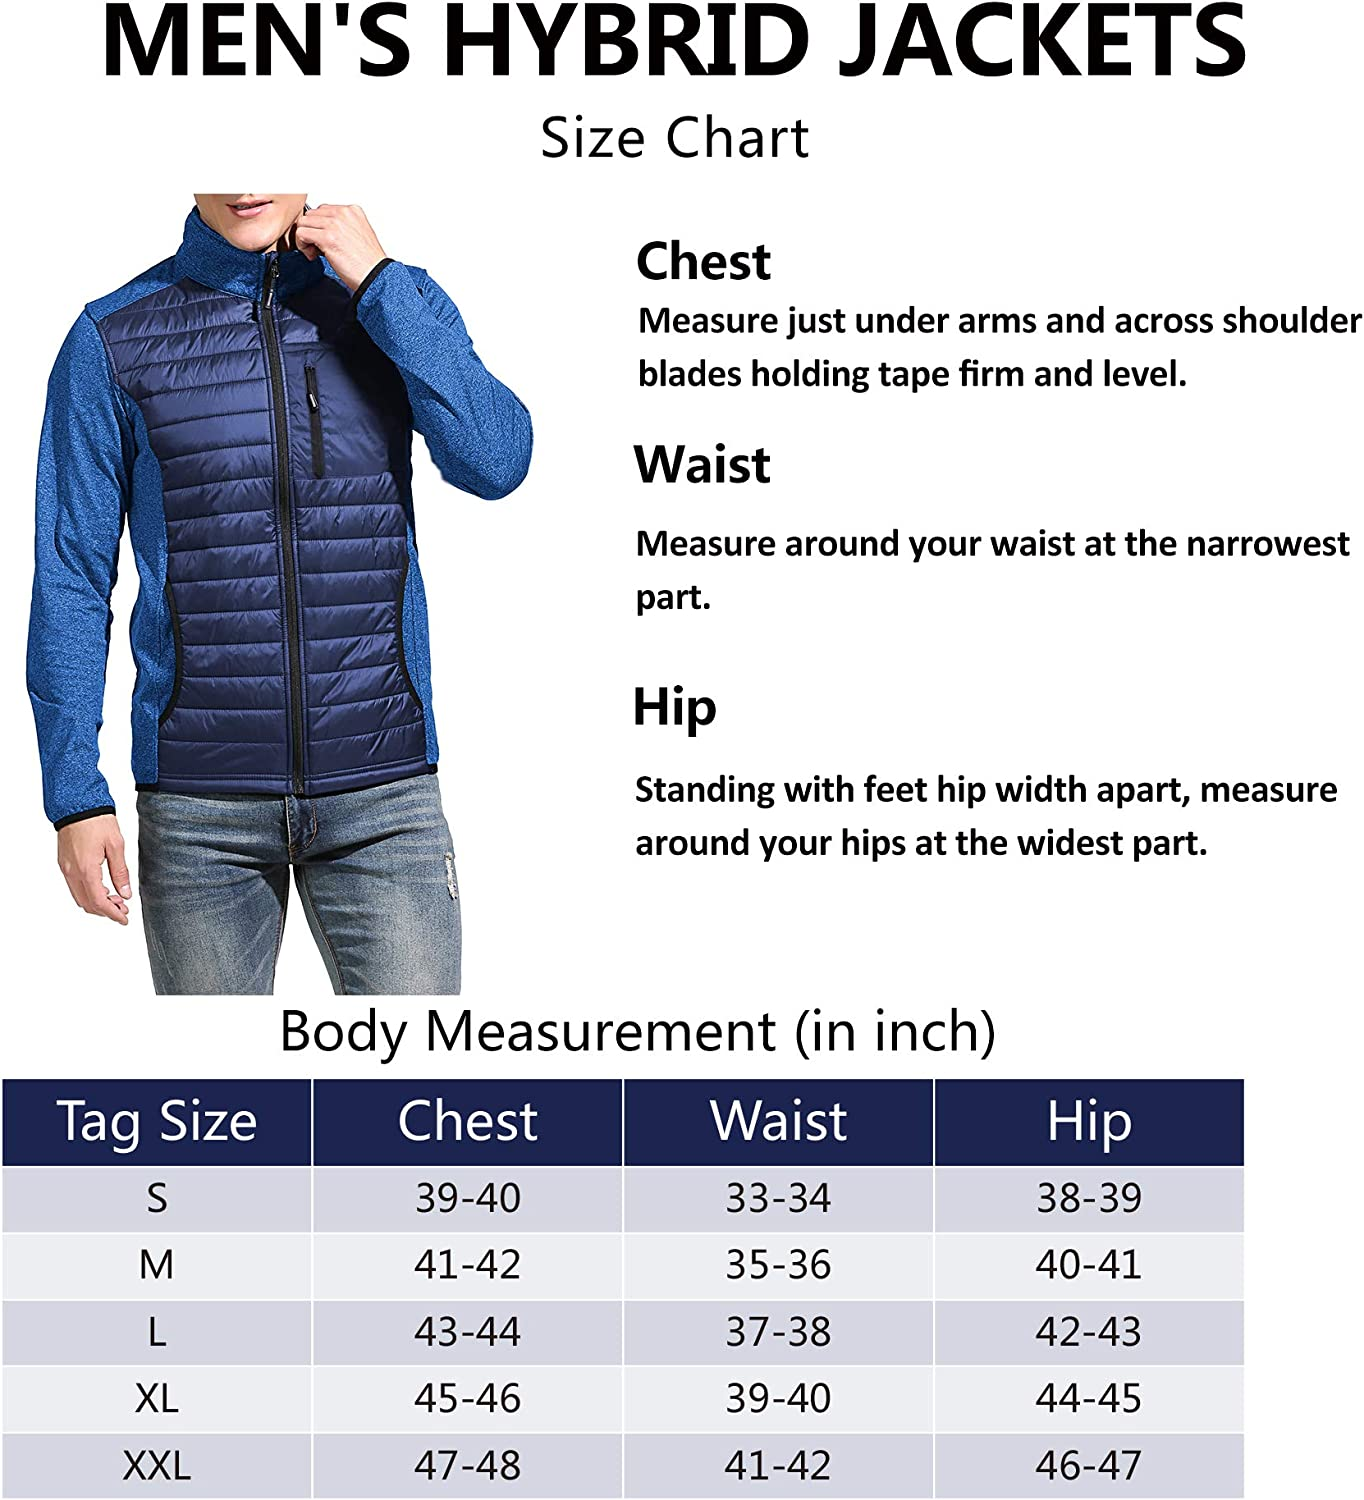 Men's Insulated Hybrid Hiking Jacket, Lightweight Thermal Running Jacket Quilted Outerwear Jacket